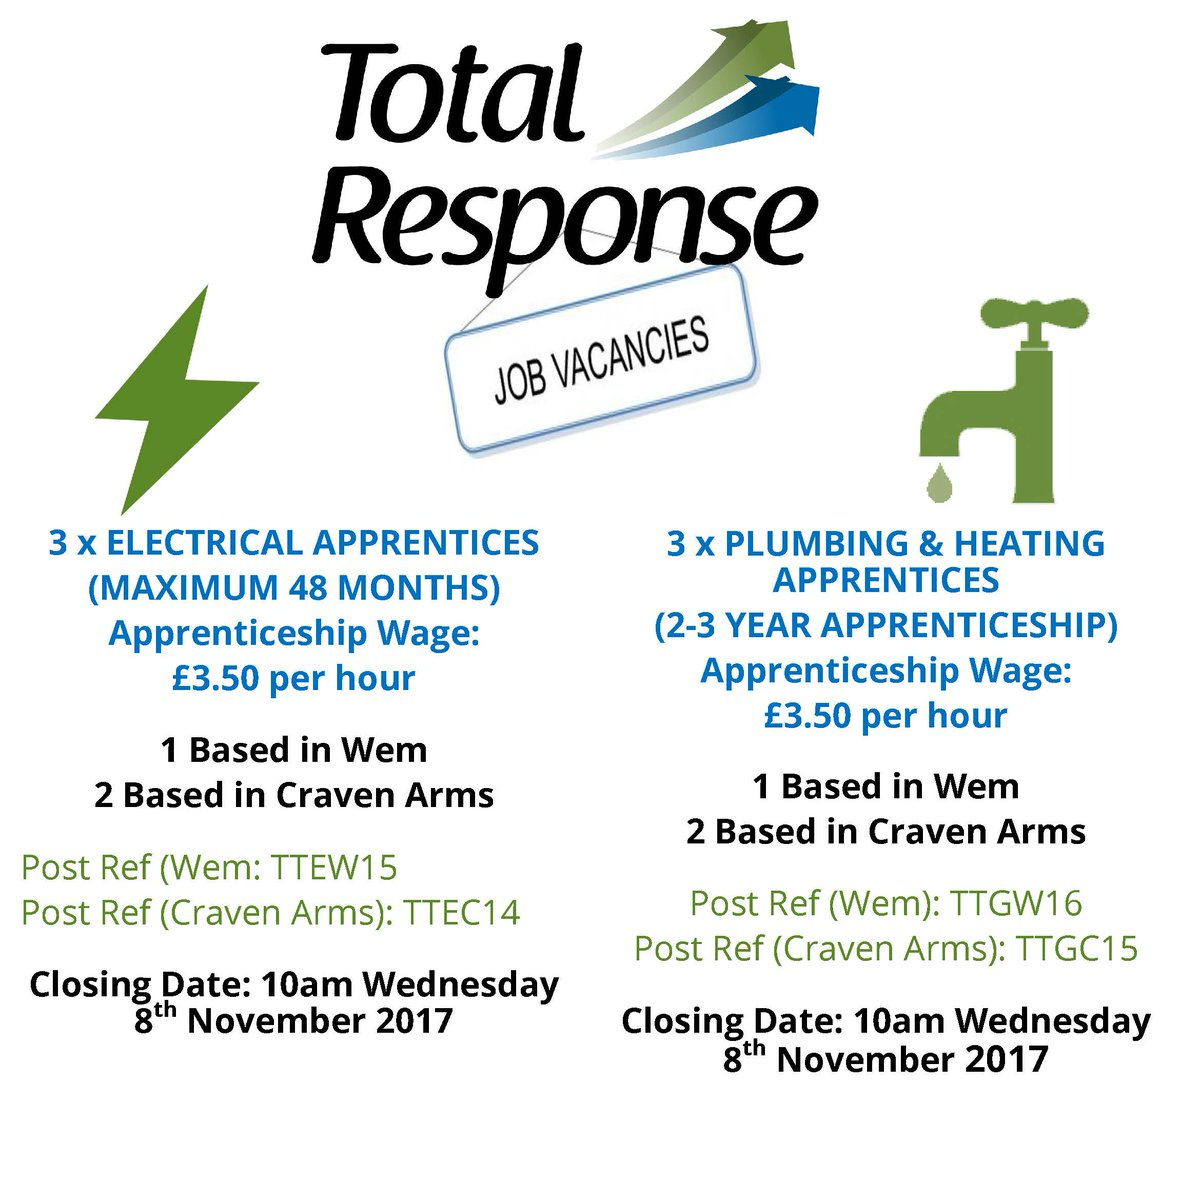 Marches clts marchesclts twitter apprenticeships available at total response apply here httpsgoobpzwzq picitterf2ihikxonx dailygadgetfo Images